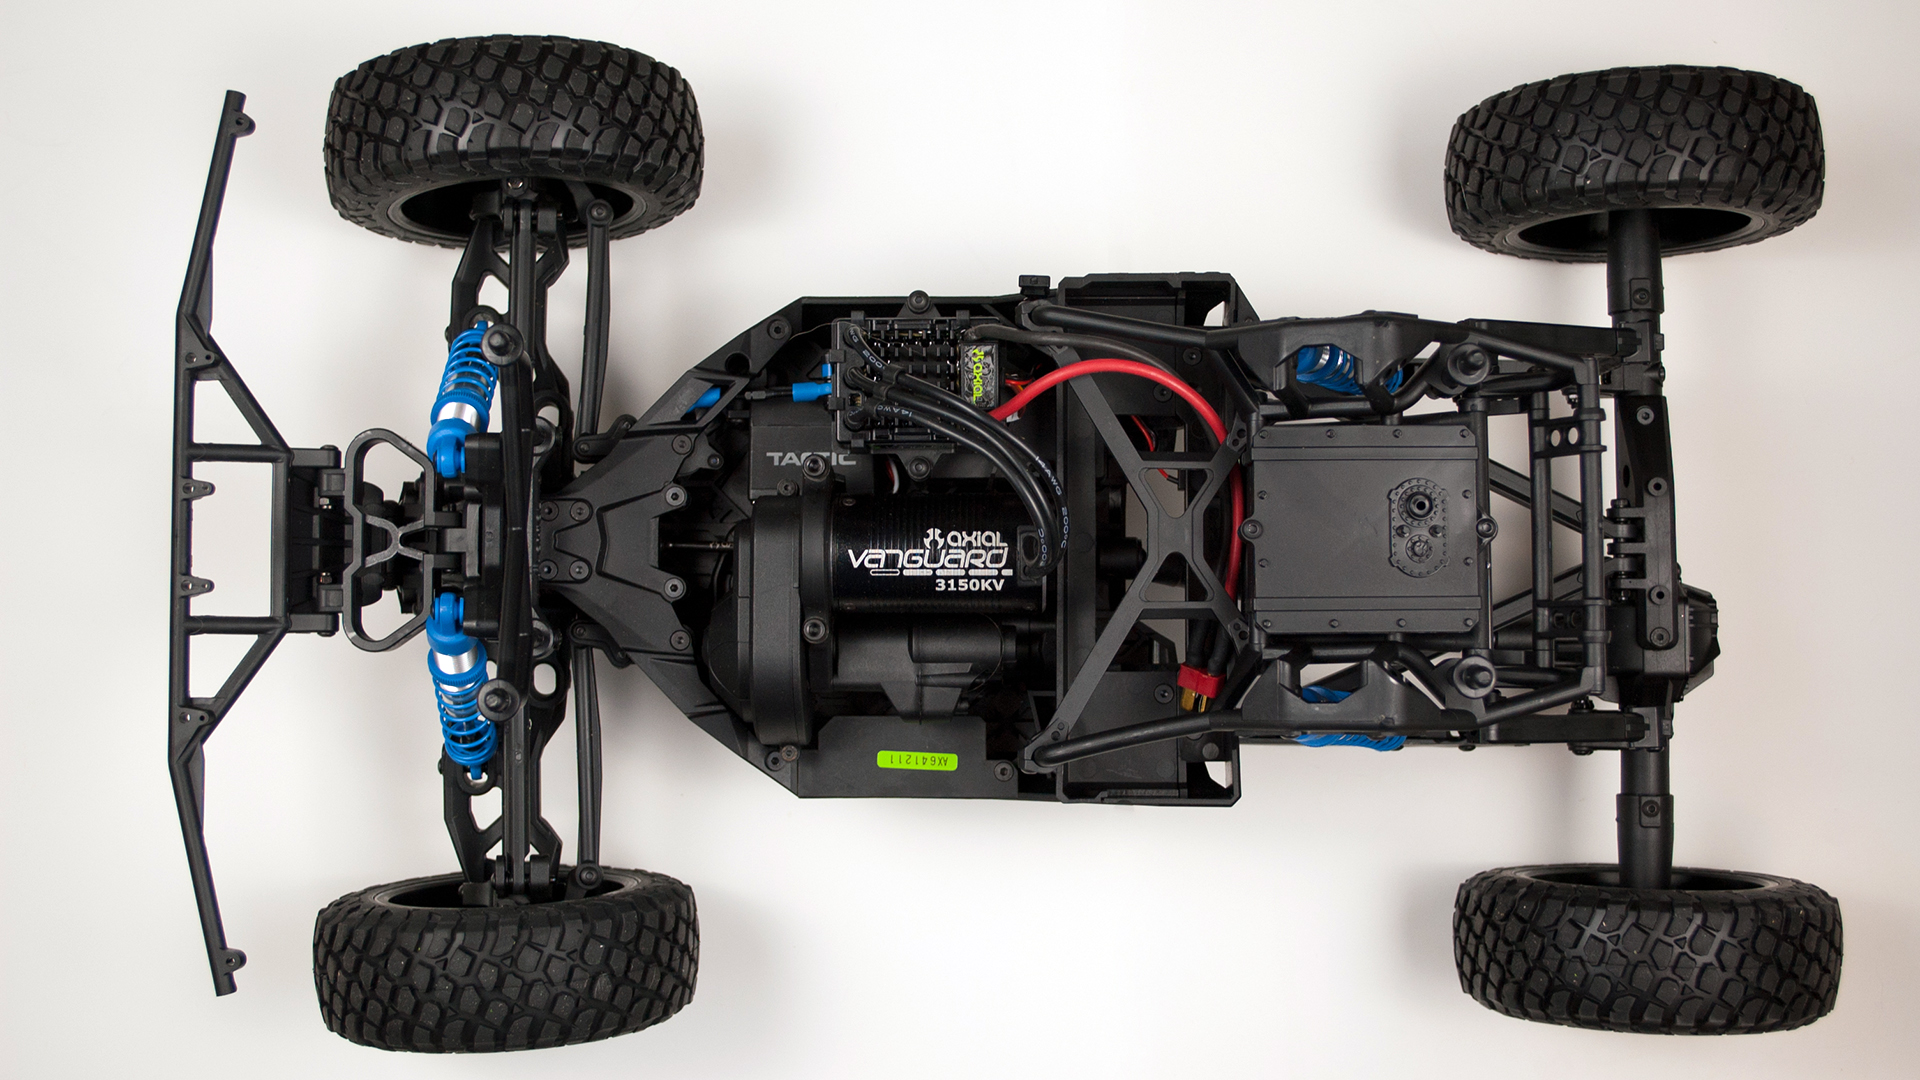 rc road vehicles with 563052 Tested Axial Yeti Score Rc Truck on Watch as well Watch likewise Watch also Photo 14 moreover Mercedes G Class 2018 Latest Pictures News Specs.